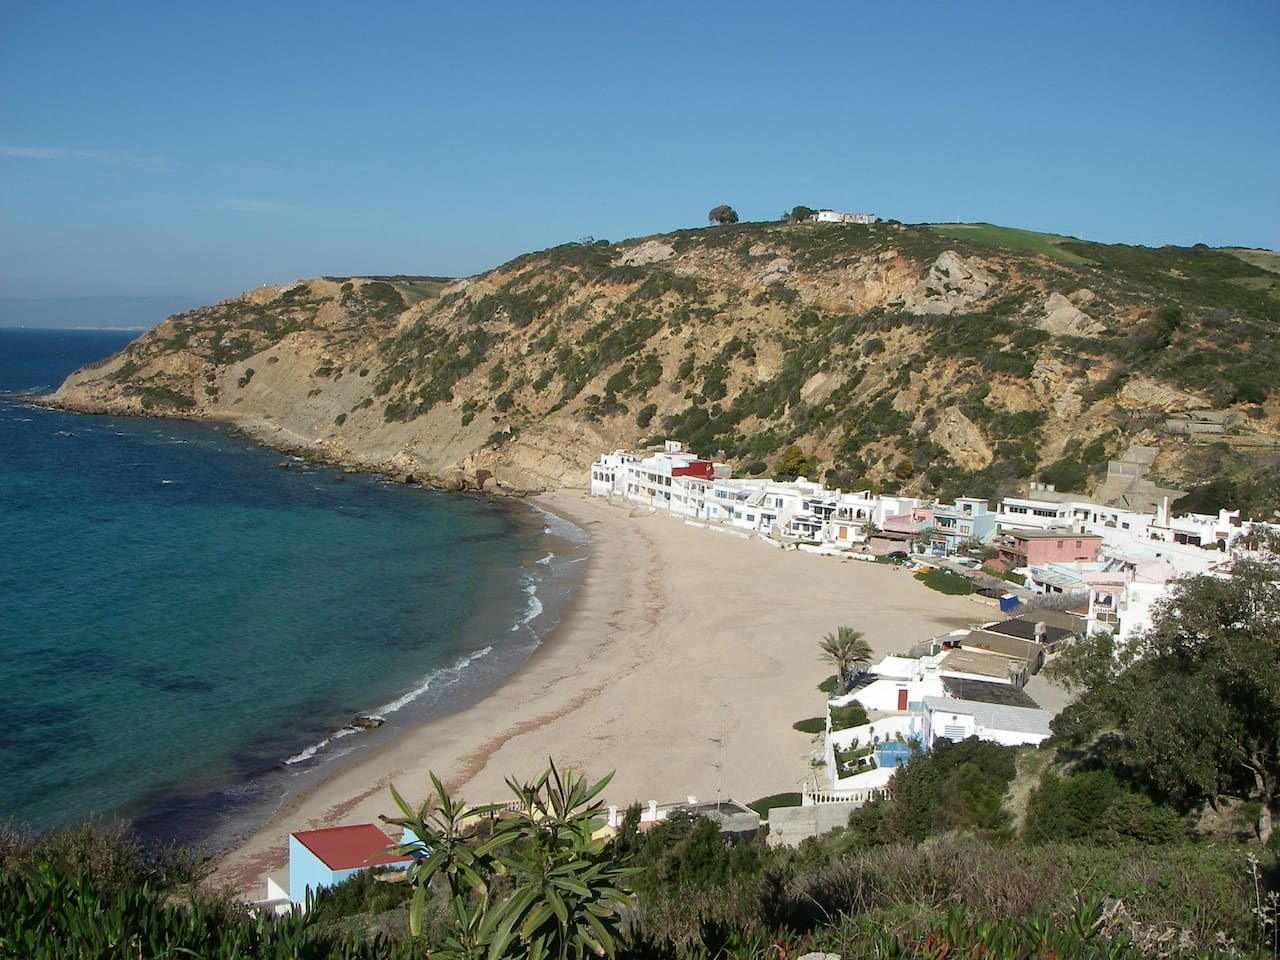 Playa Blanca - view from the road leading to the beach.